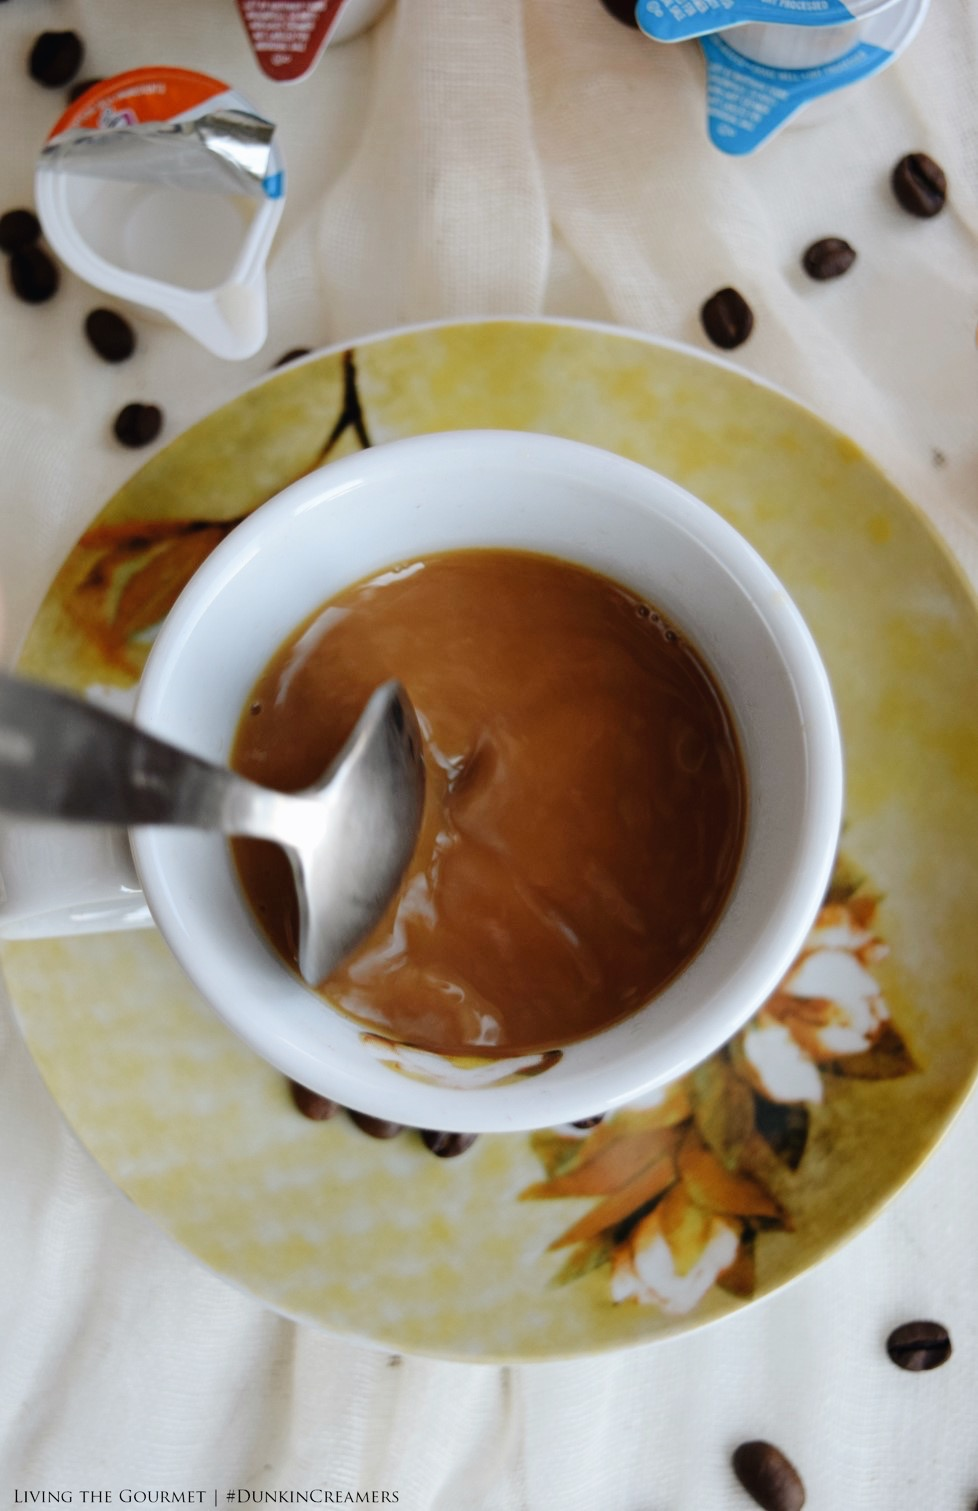 Living the Gourmet: A Guide to Brewing the Perfect Cup of Coffee | #DunkinCreamers #Ad